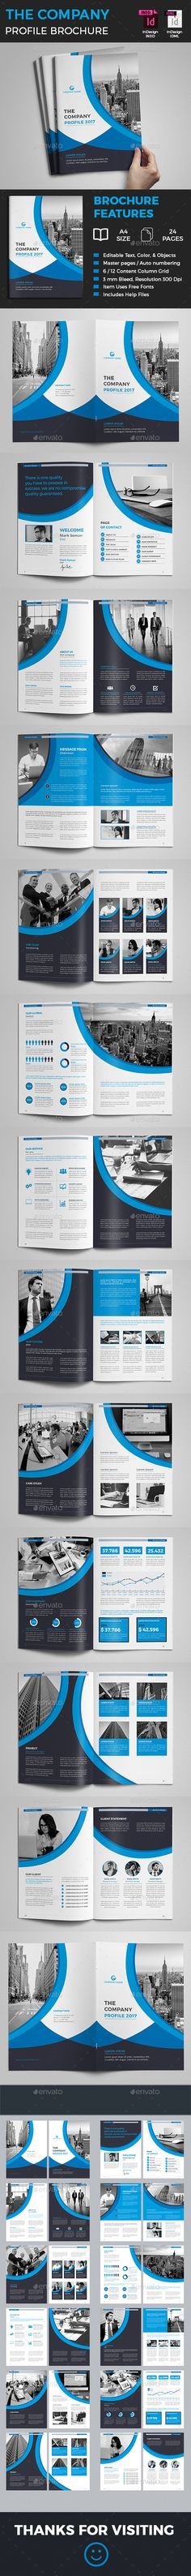 International Freight Flyer Template air, cargo, carriage - it company profile template